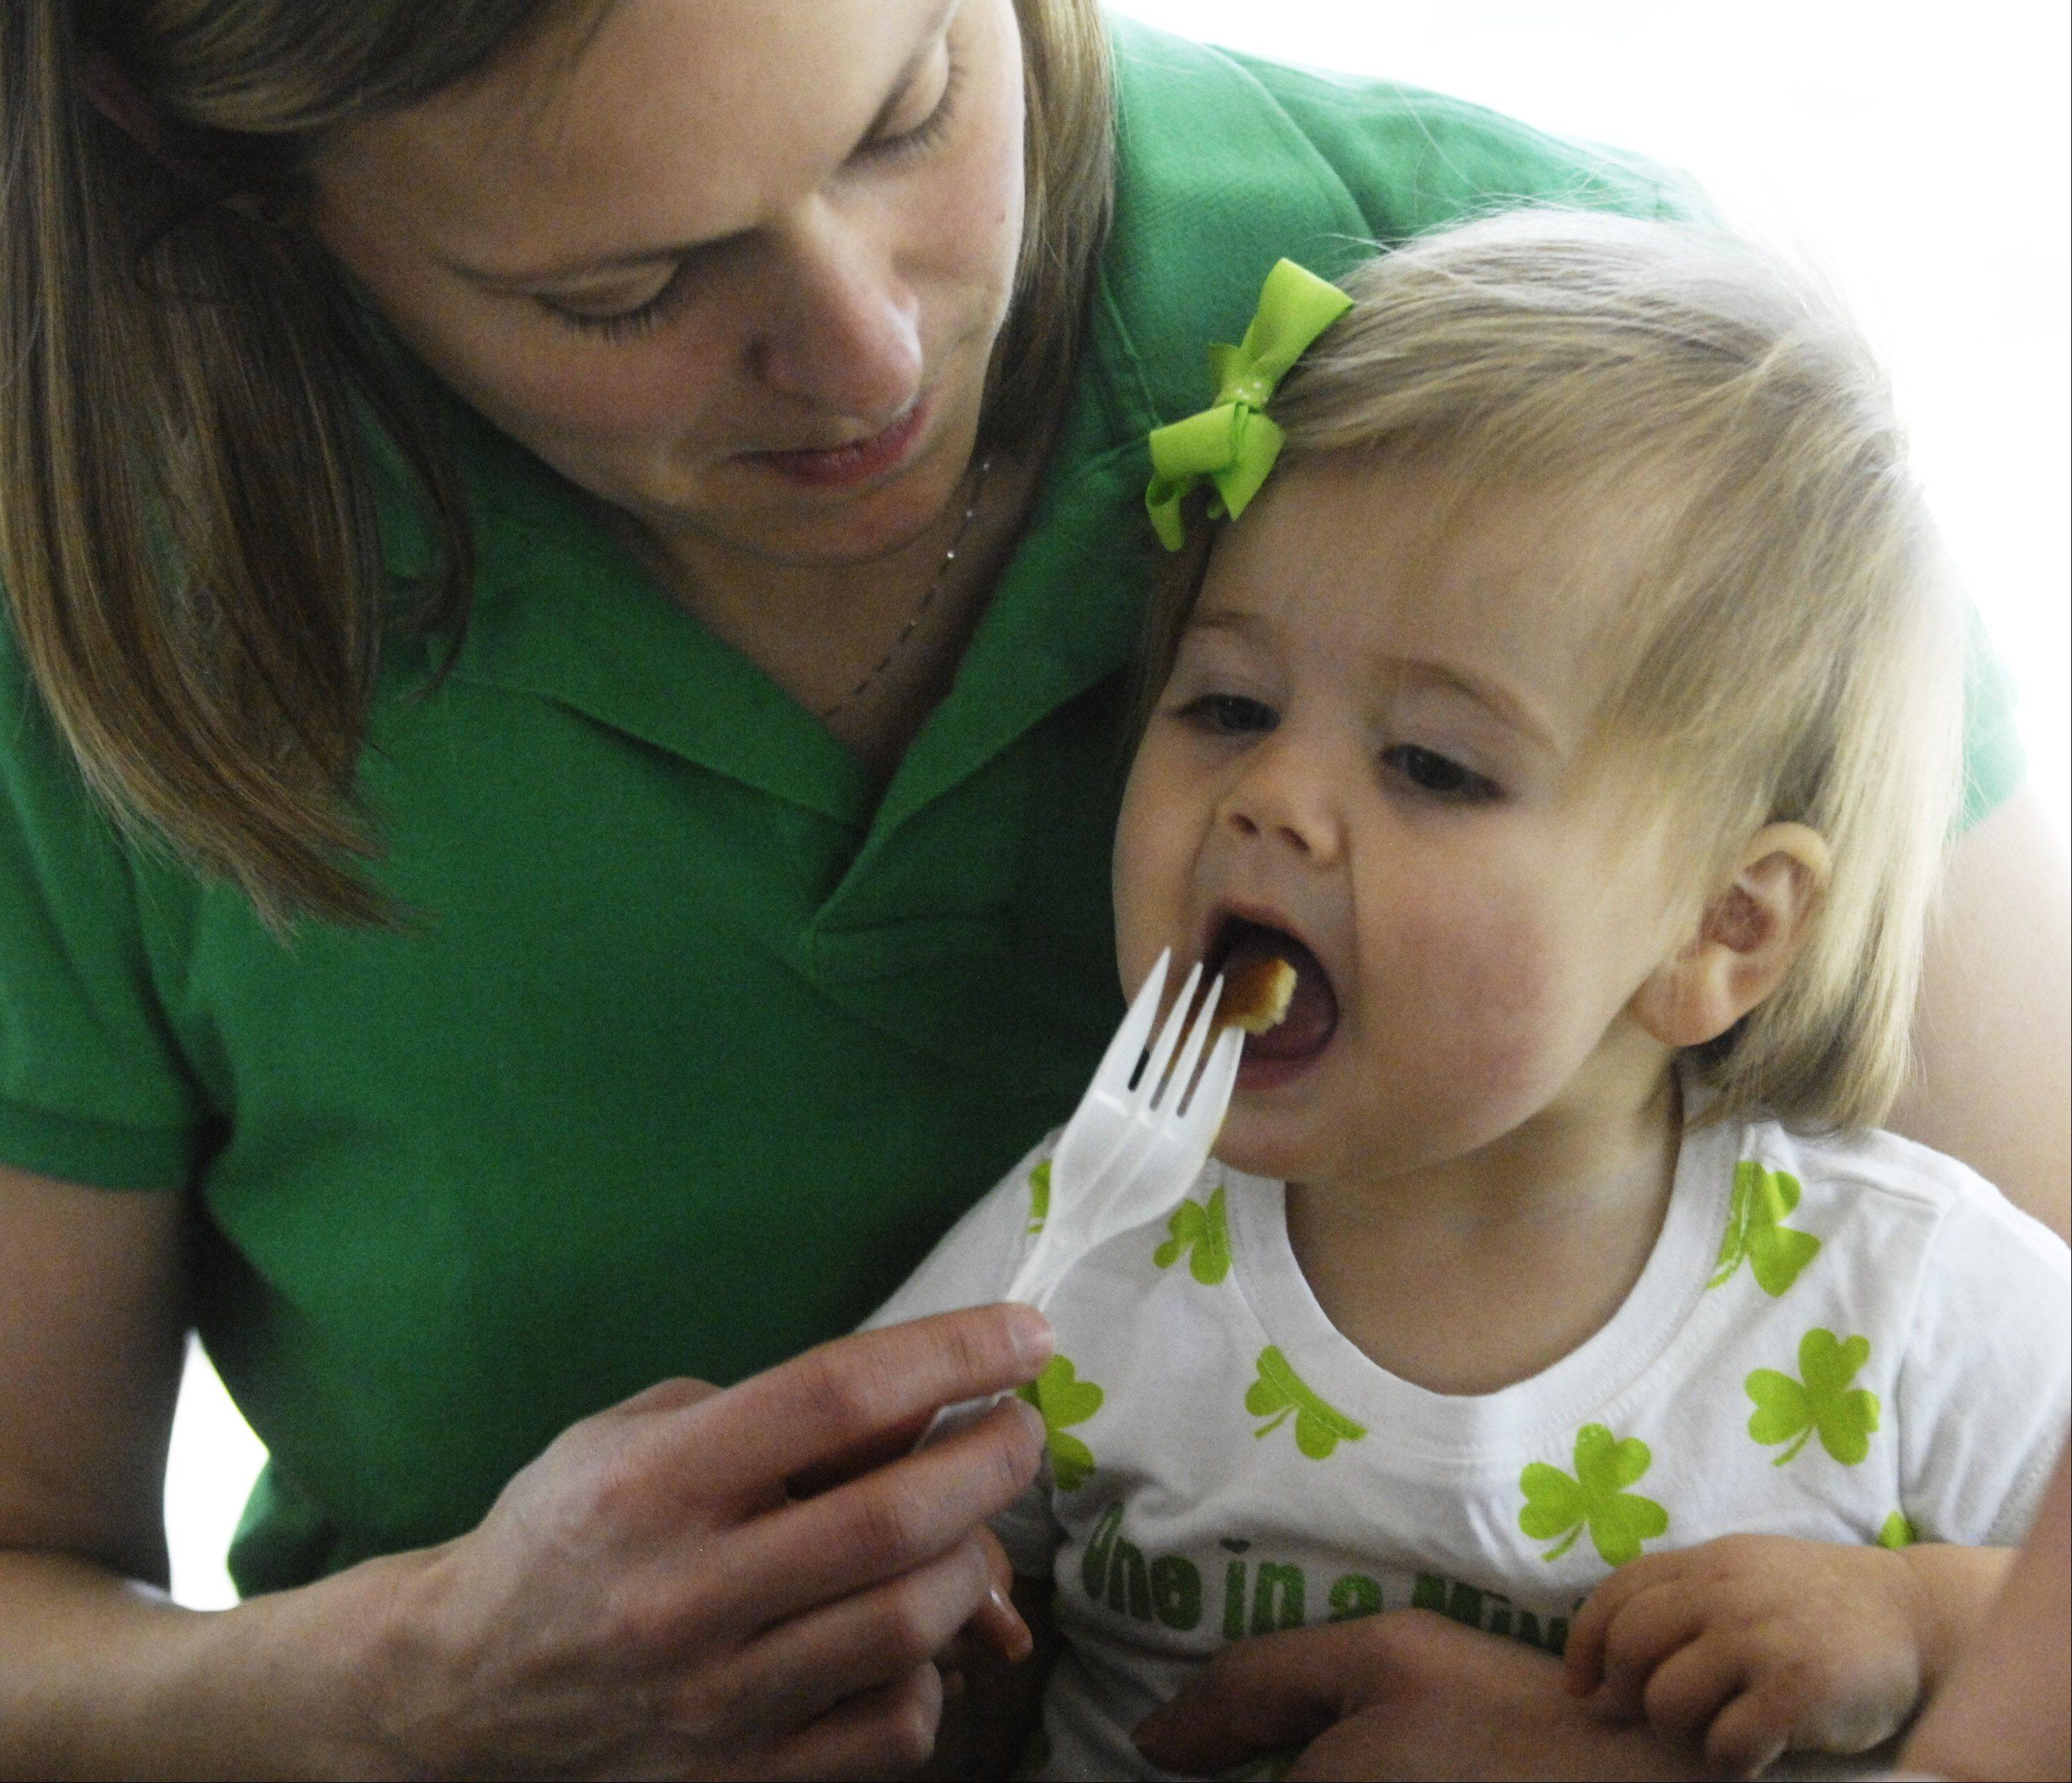 Zoe Anaya, 1, of Rolling Meadows enjoys a plate of pancakes and syrup with her mom, Nicole, during the Sugar Bush Festival at the Spring Valley Nature Center in Schaumburg Saturday.